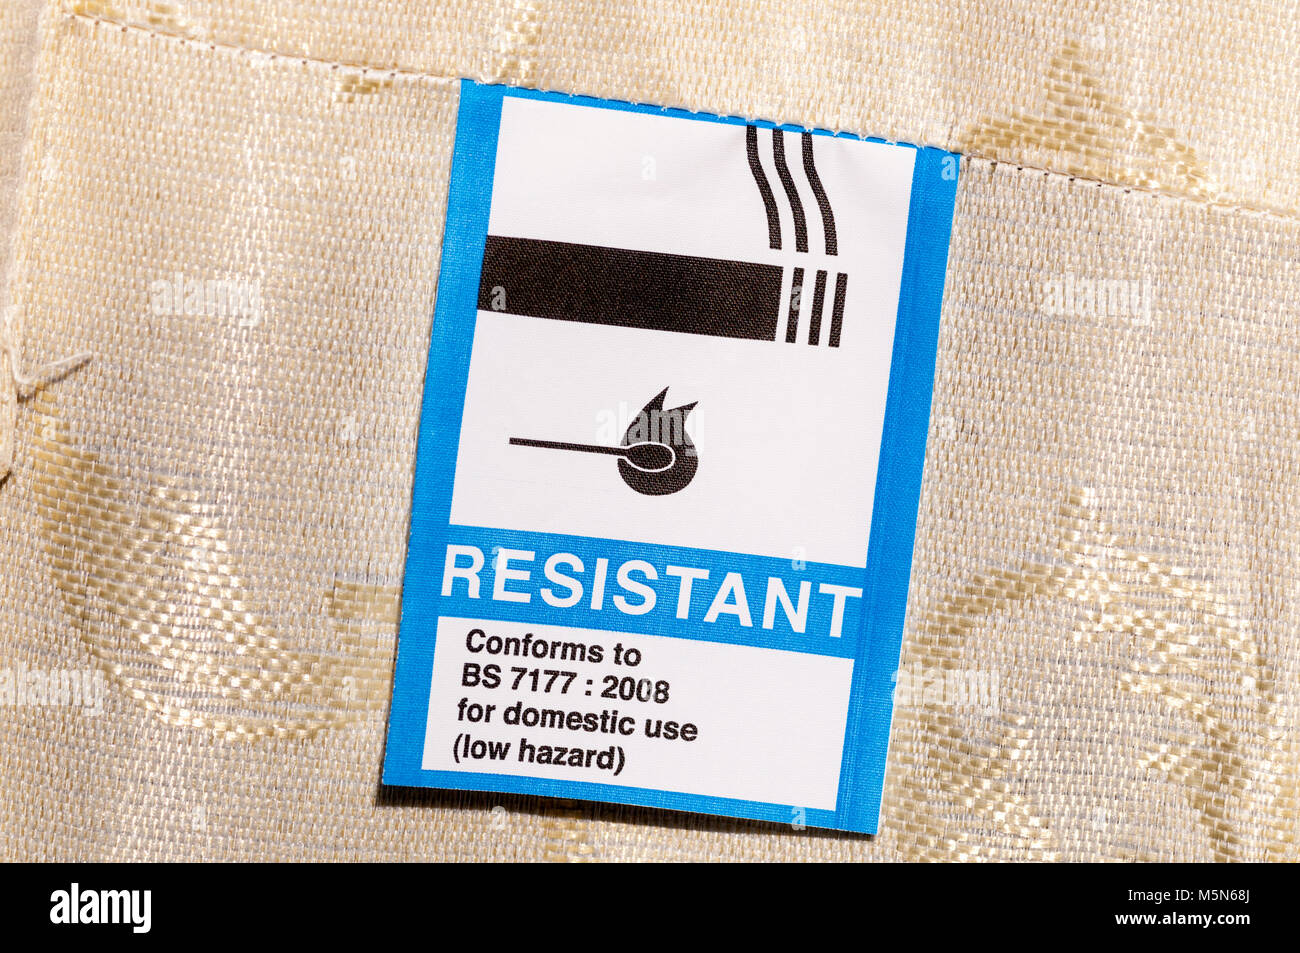 A label on a mattress confirms that it meets fire resistance standards. - Stock Image